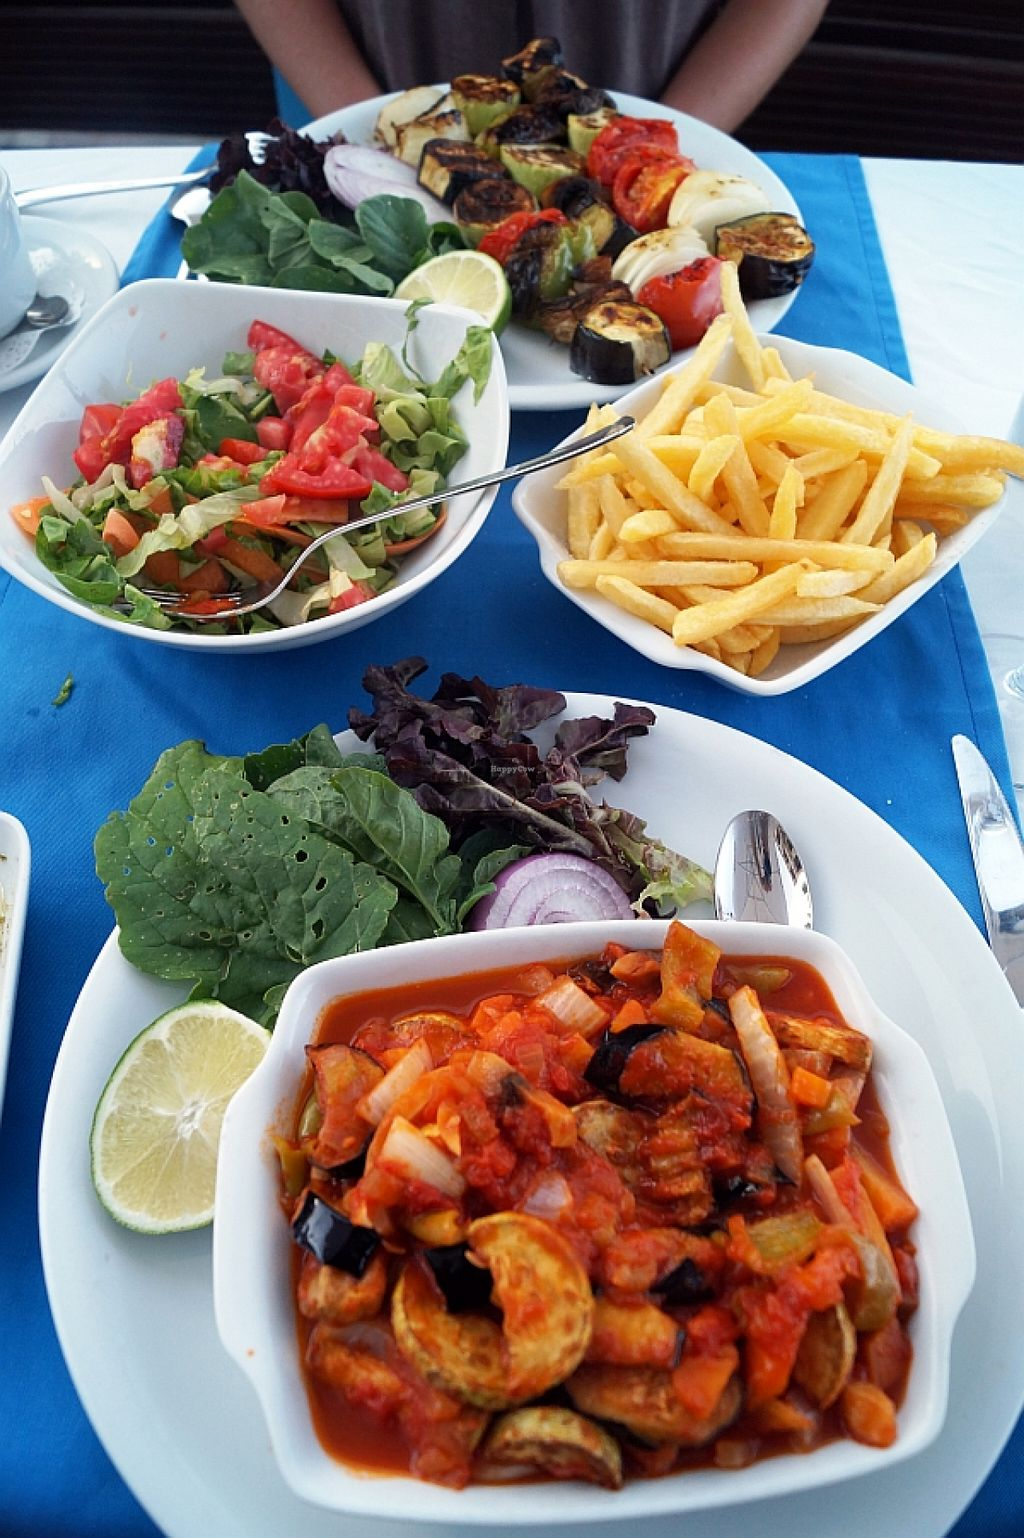 """Photo of Sandal  by <a href=""""/members/profile/danielpoland"""">danielpoland</a> <br/>Musaka without cheese, skewers and fries.  <br/> August 17, 2015  - <a href='/contact/abuse/image/62091/113932'>Report</a>"""